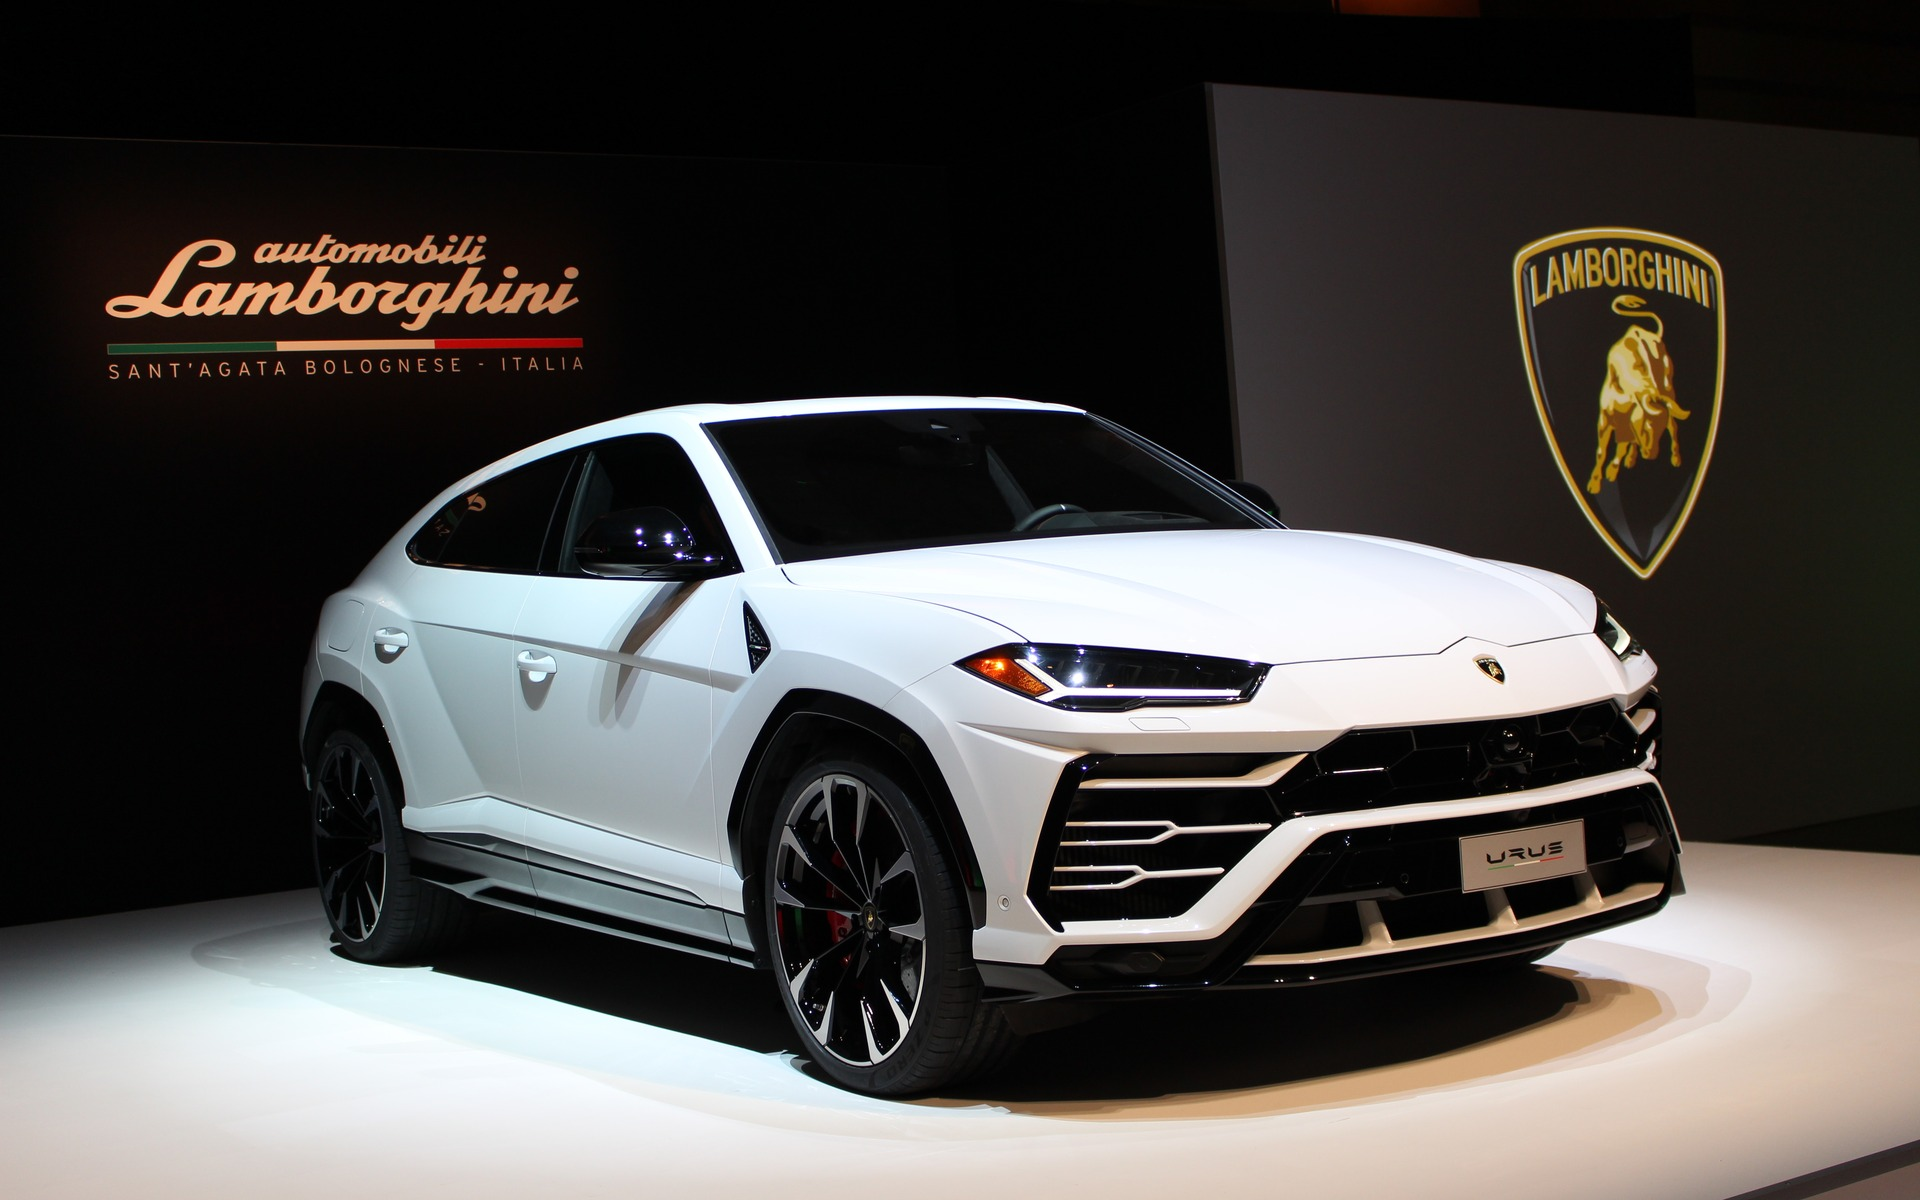 2019 Lamborghini Urus Preview The Car Guide